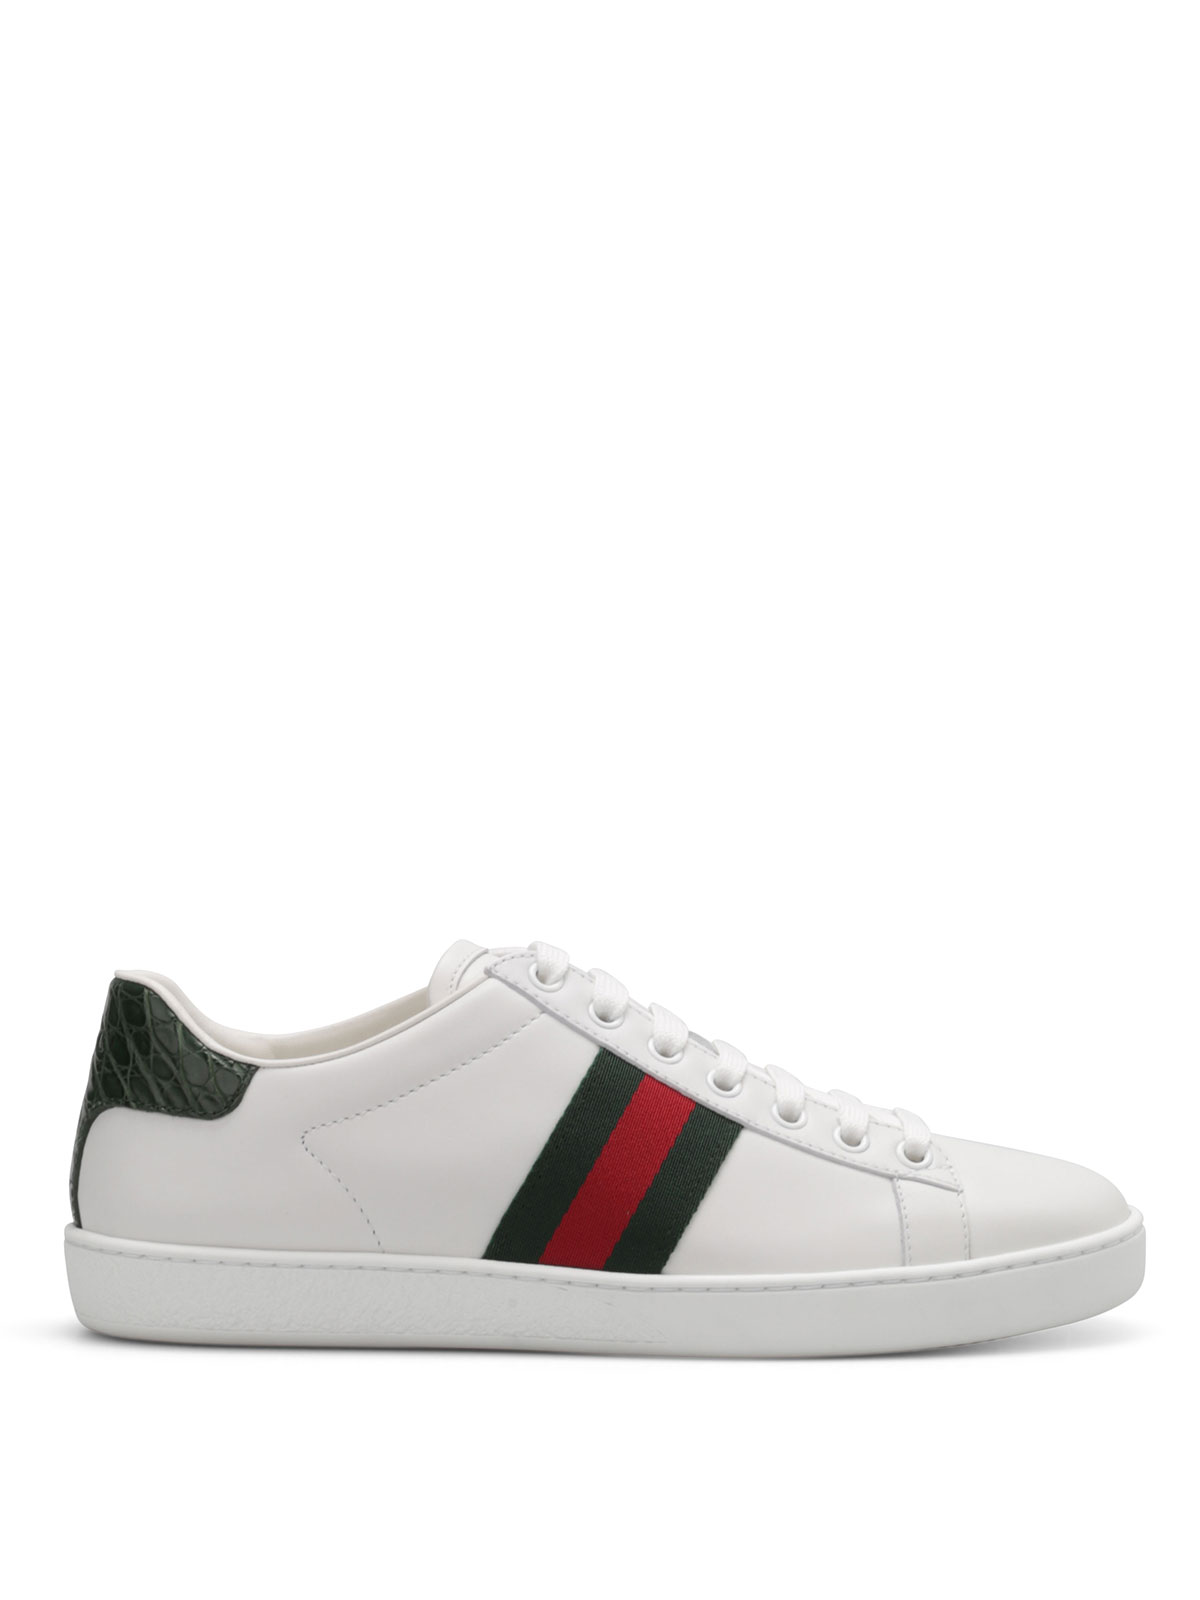 d43a18913c8 Gucci - Crocodile sneakers - trainers - 387993 A3830 9071